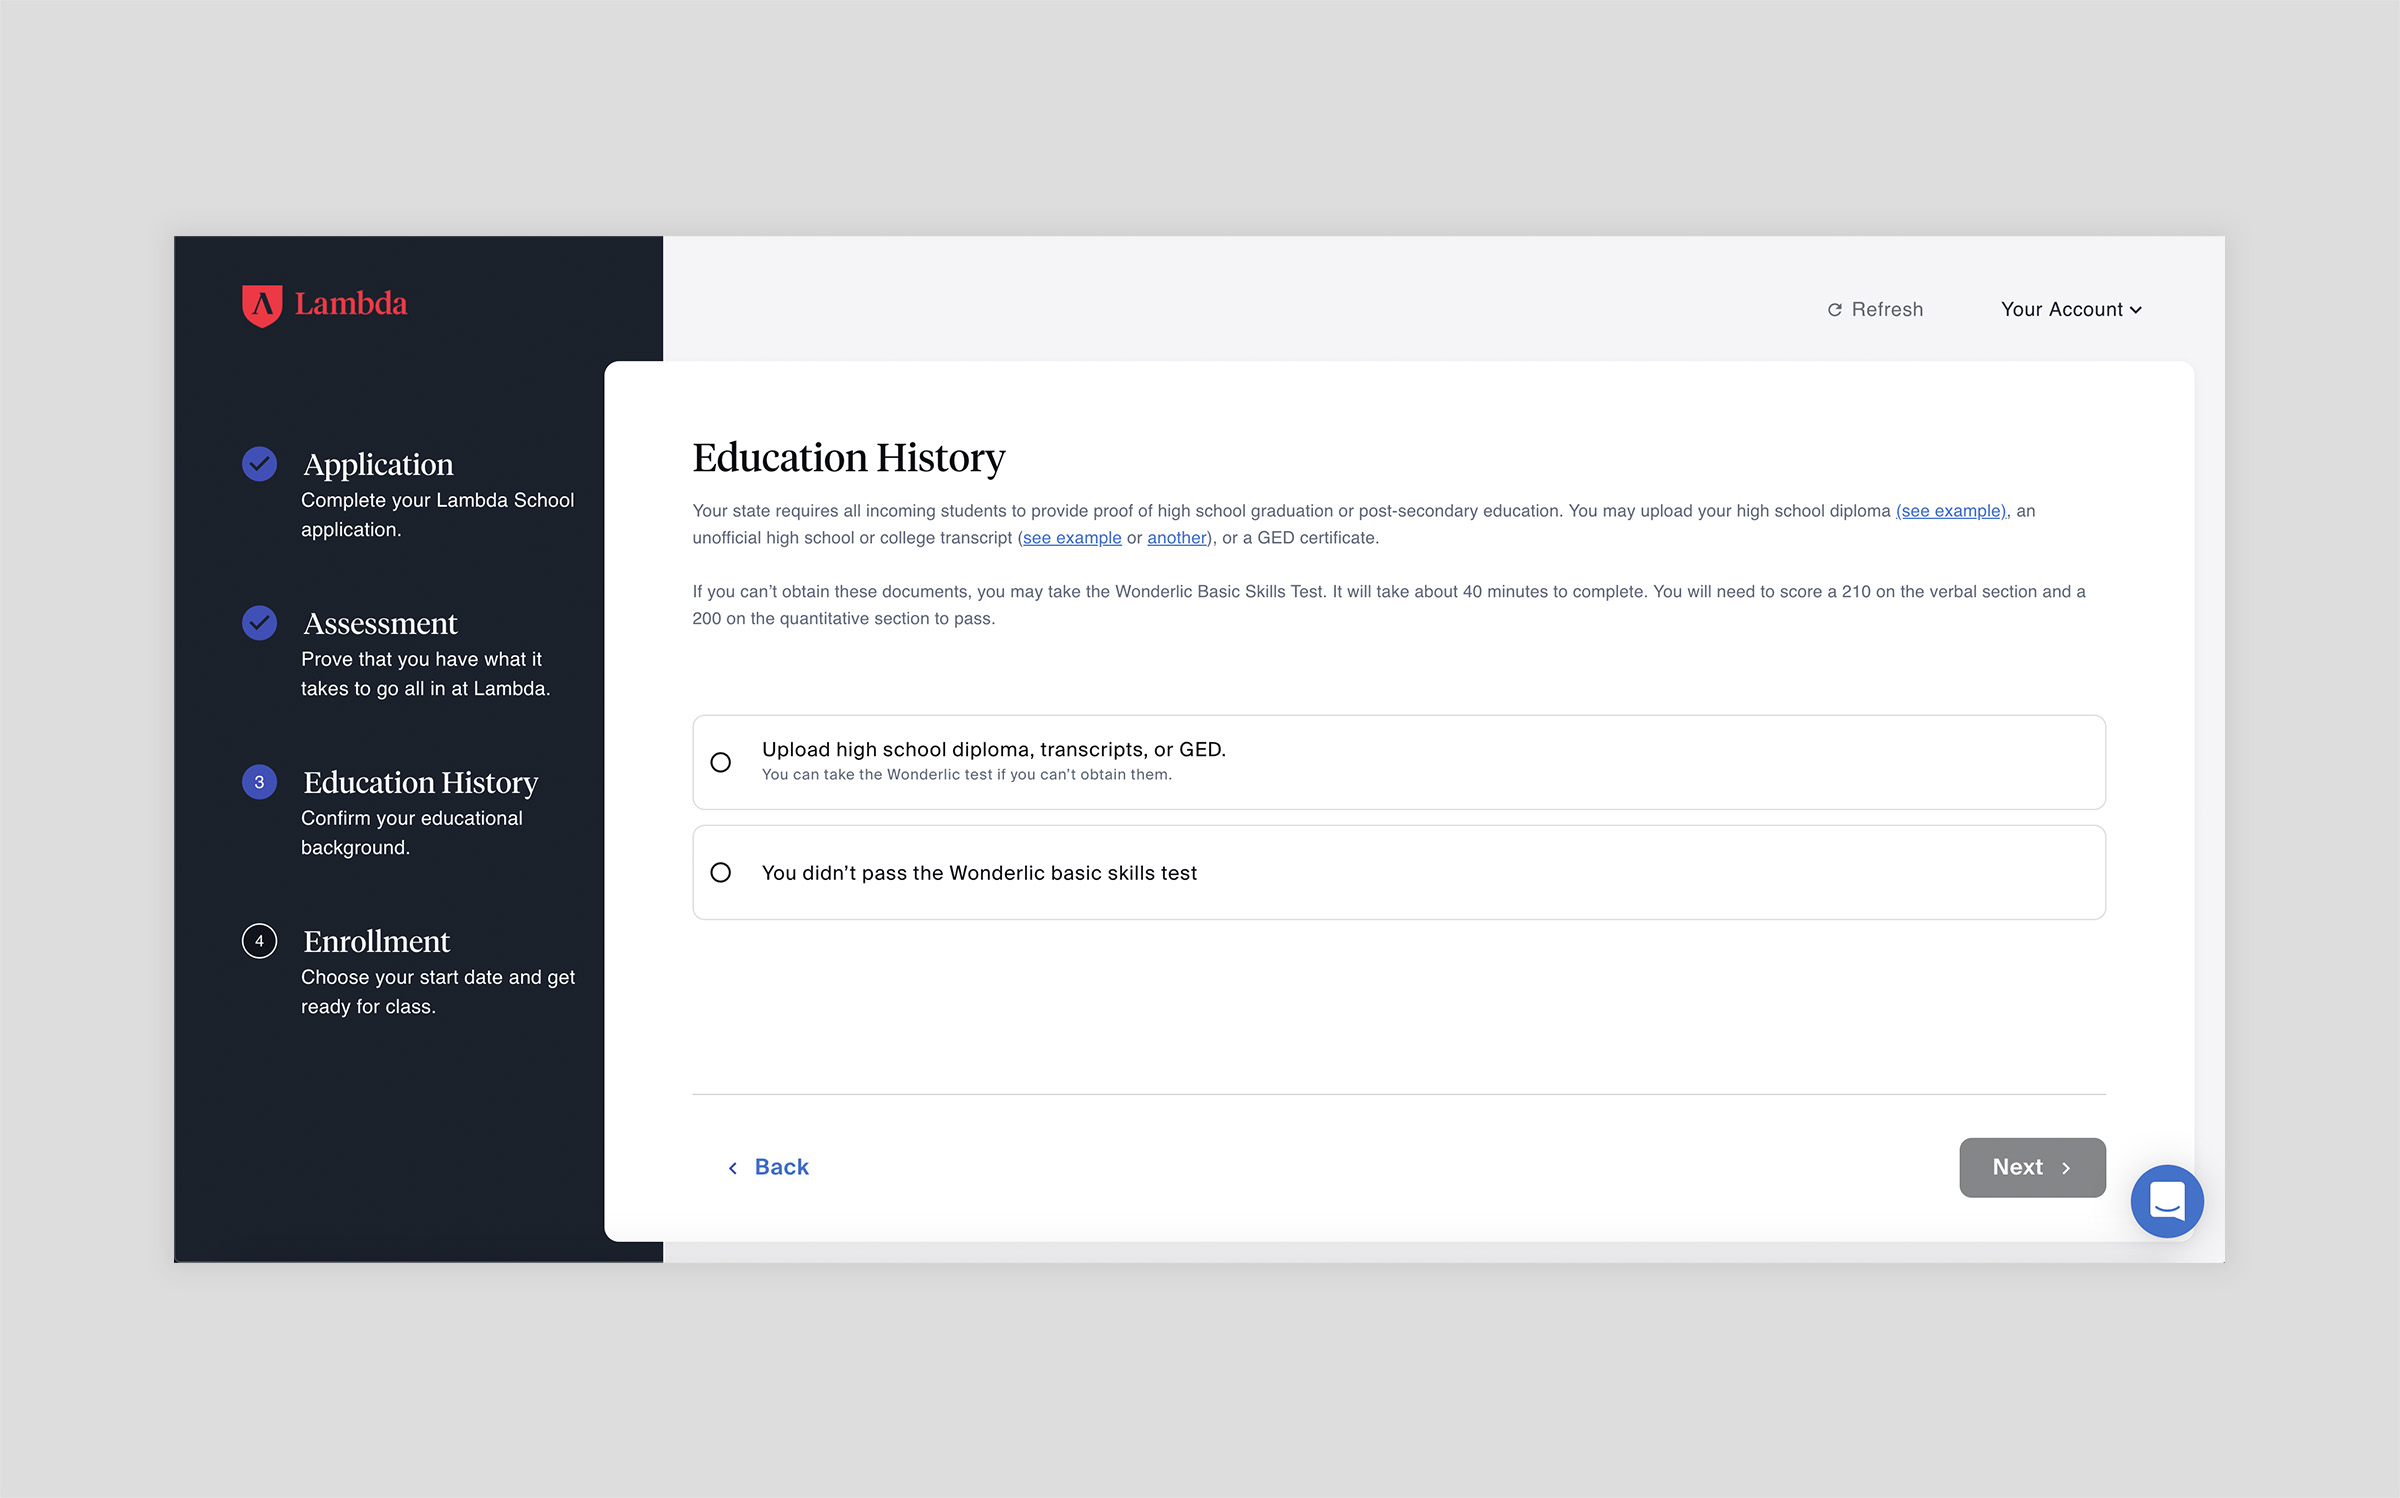 upload your education history